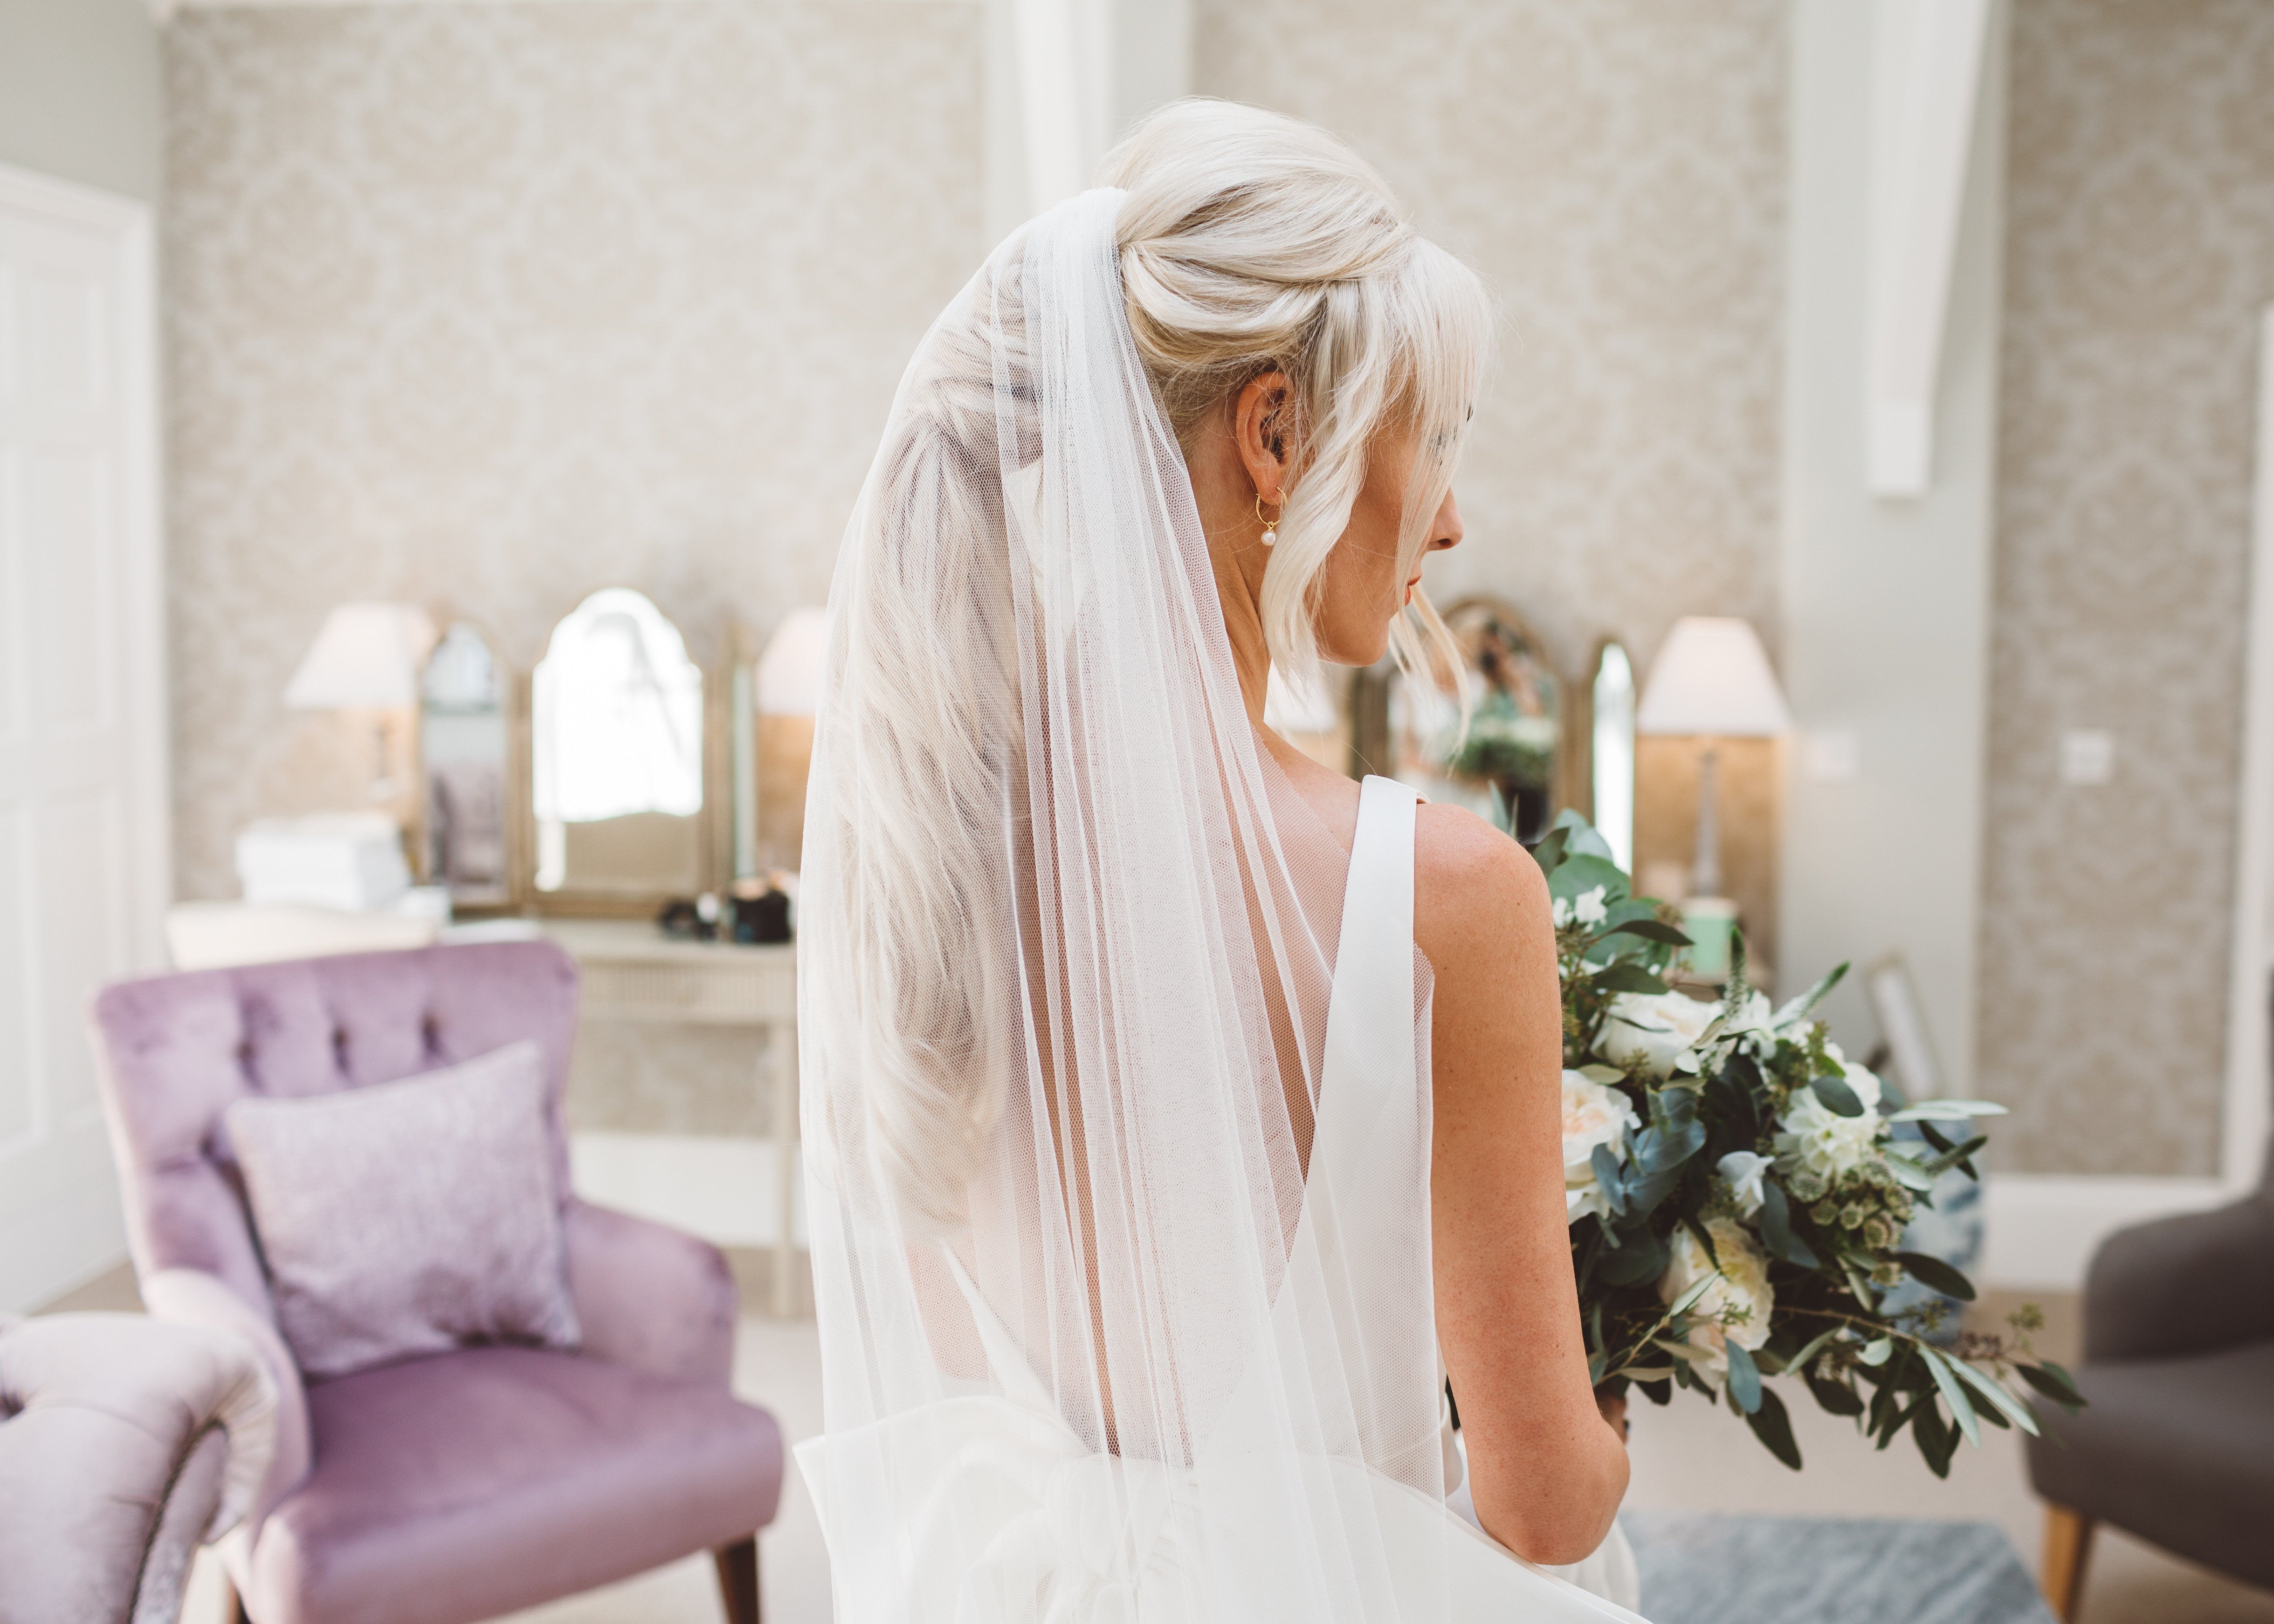 bride ready to get married with a stunning veil and statement ponytail